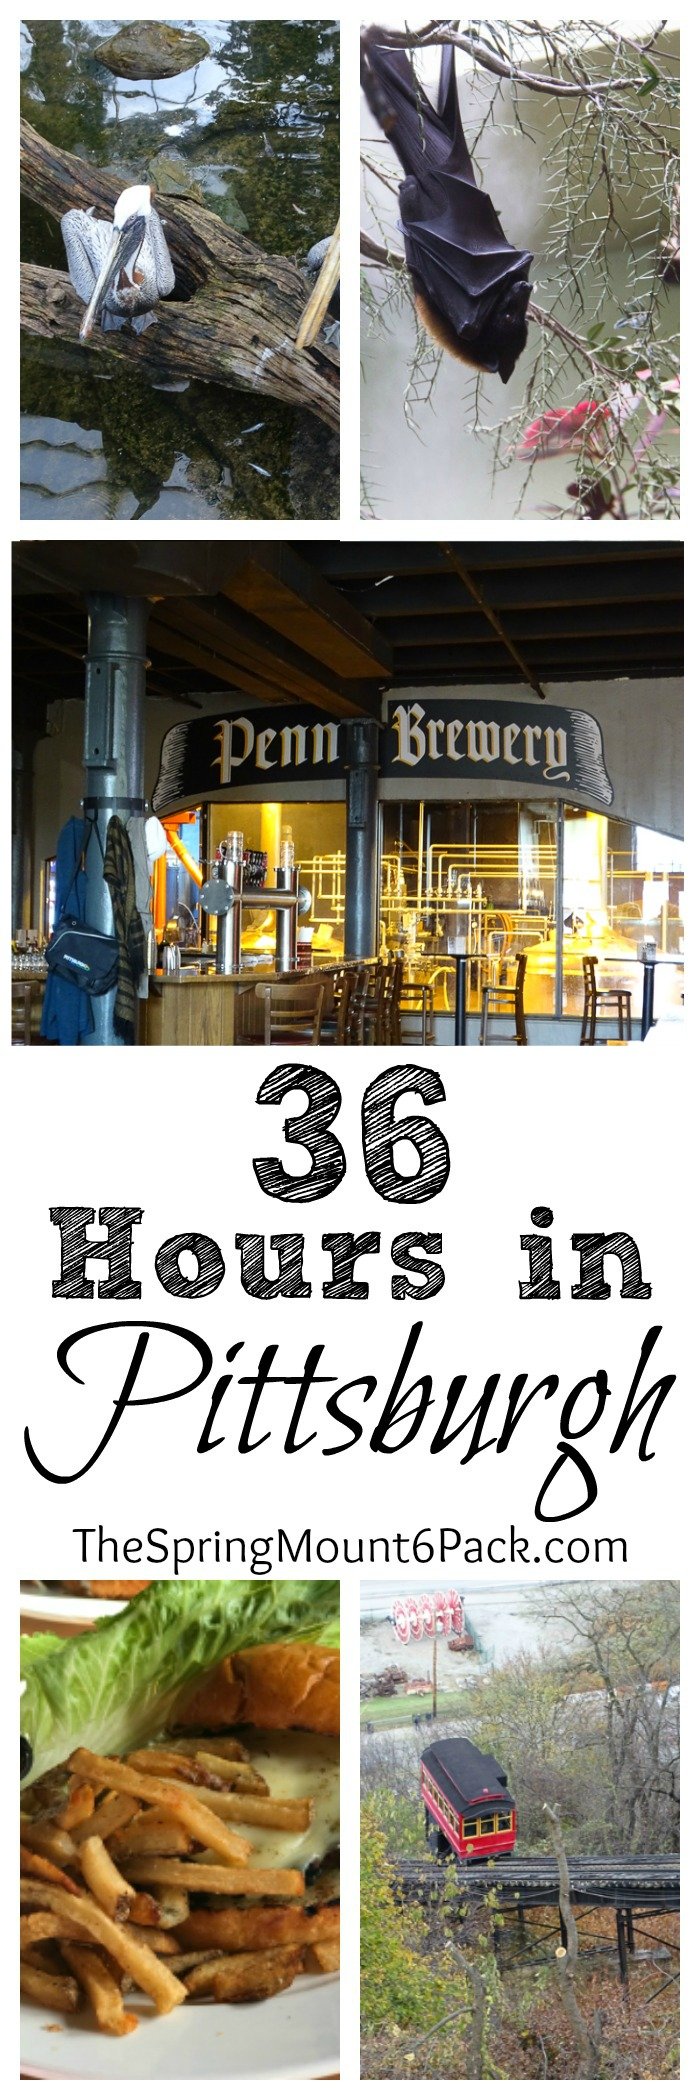 Heading to Pittsburgh Looking for things to do in Pittsburgh Check out what we did during our time in Pittsburgh and events coming soon.